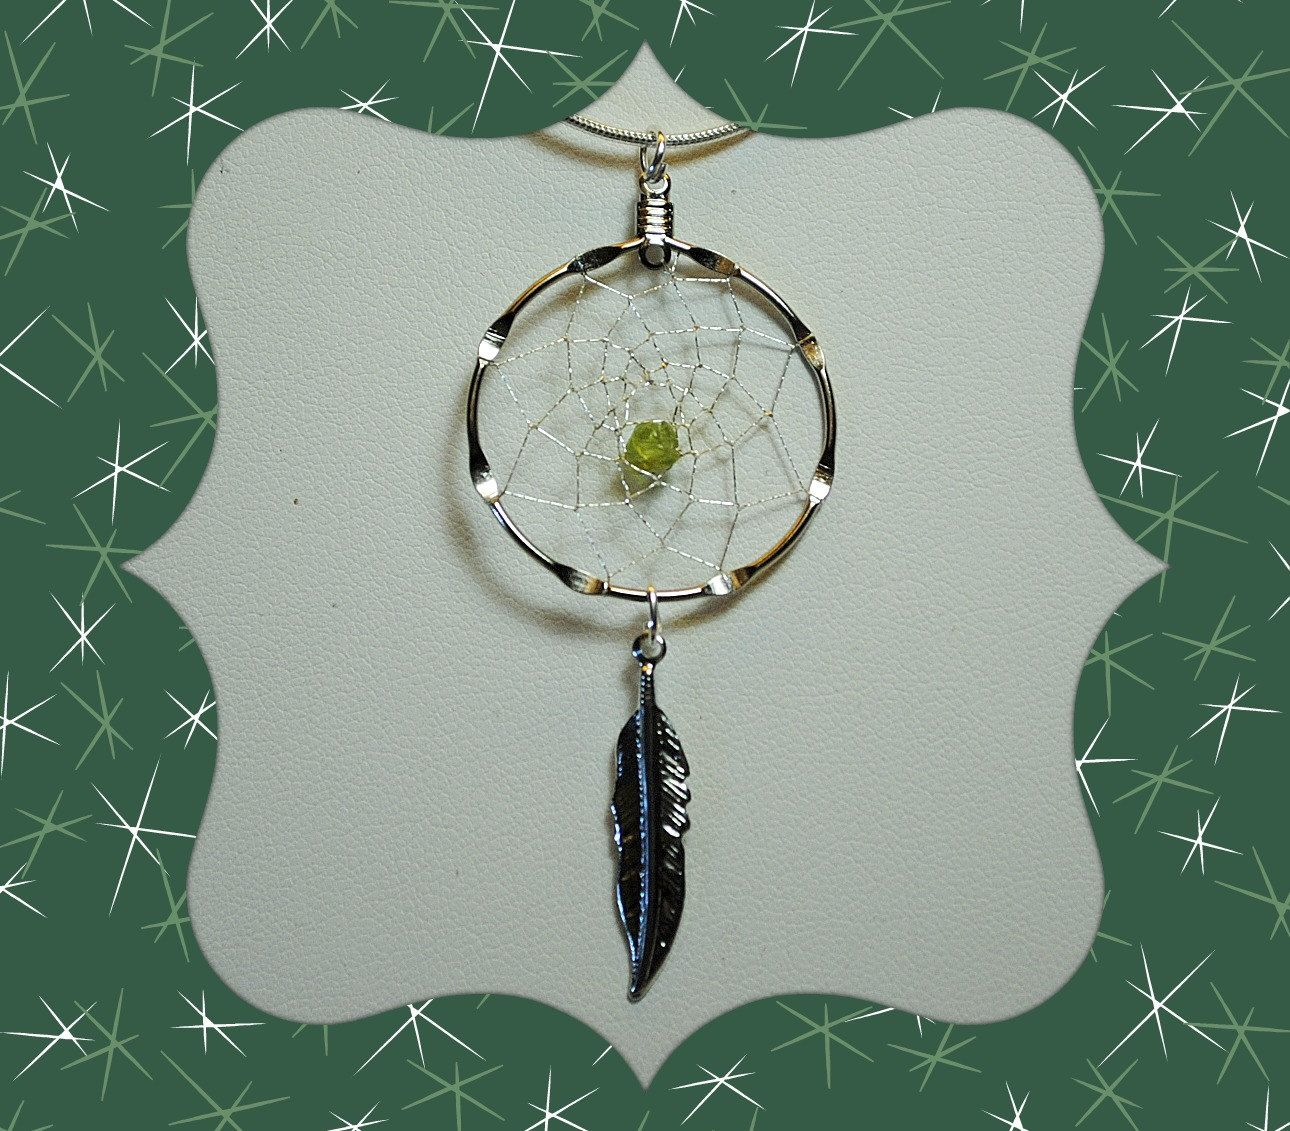 Silver Dream Catcher Necklace with a Peridot Chip and Feather, Peridot necklace, Native American Style, August Birthstone, tribal, by OriginalsByCathy on Etsy